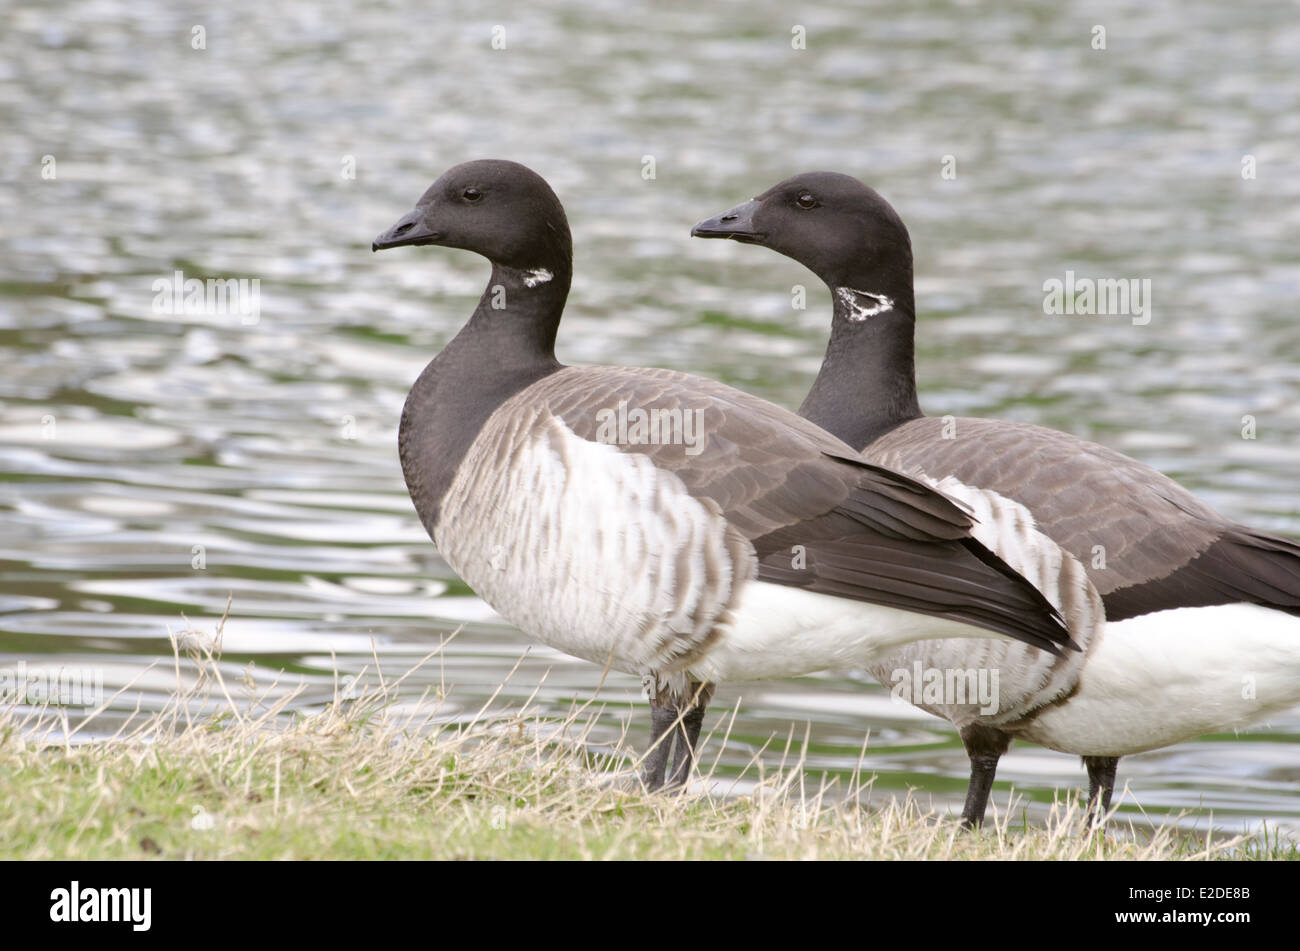 Pair of Brent geese standing by side of lake. - Stock Image